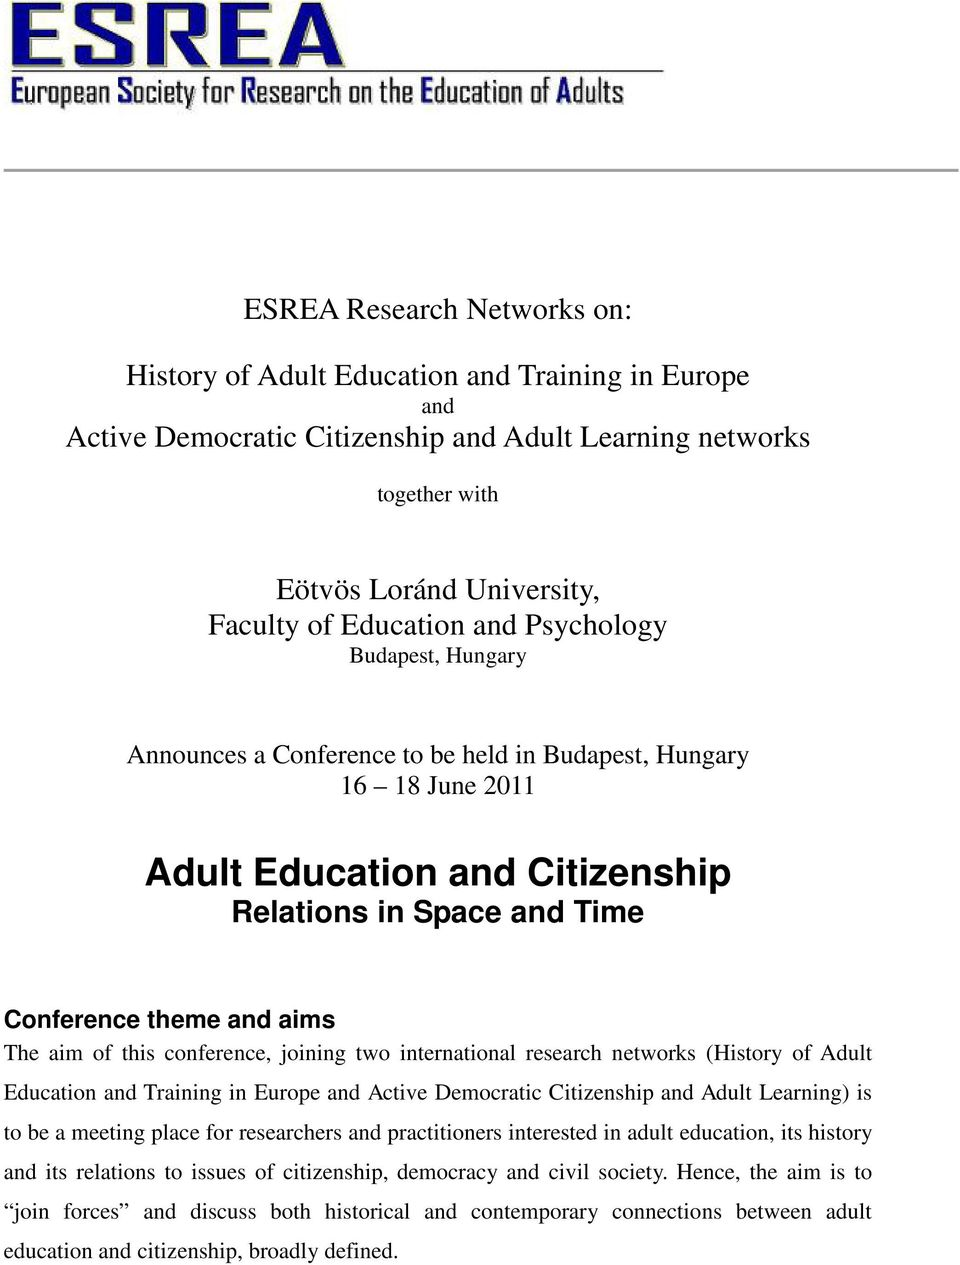 The aim of this conference, joining two international research networks (History of Adult Education and Training in Europe and Active Democratic Citizenship and Adult Learning) is to be a meeting